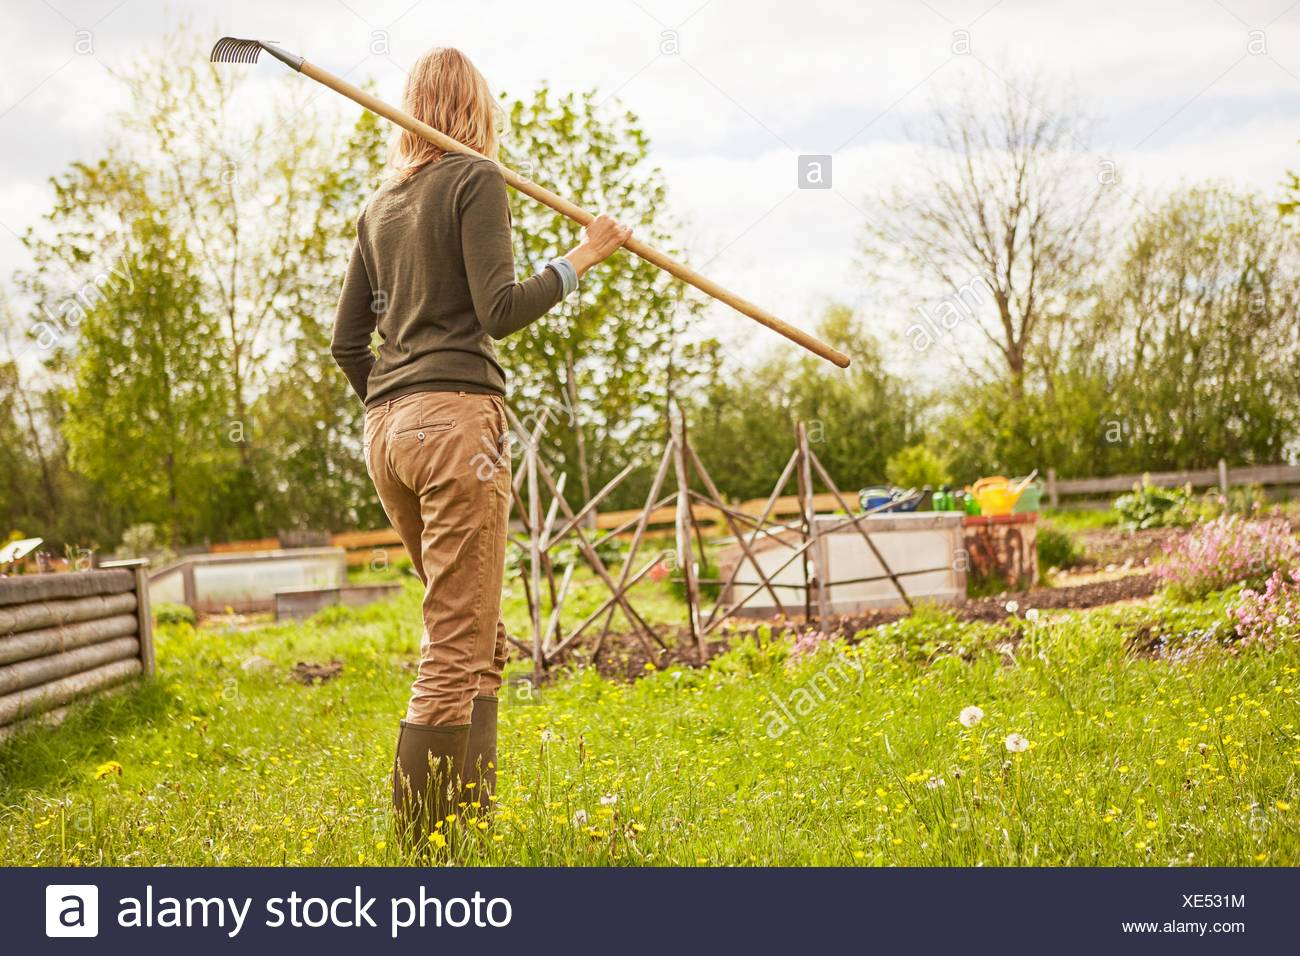 Mature woman, outdoors, gardening, carrying rake, rear view - Stock Image